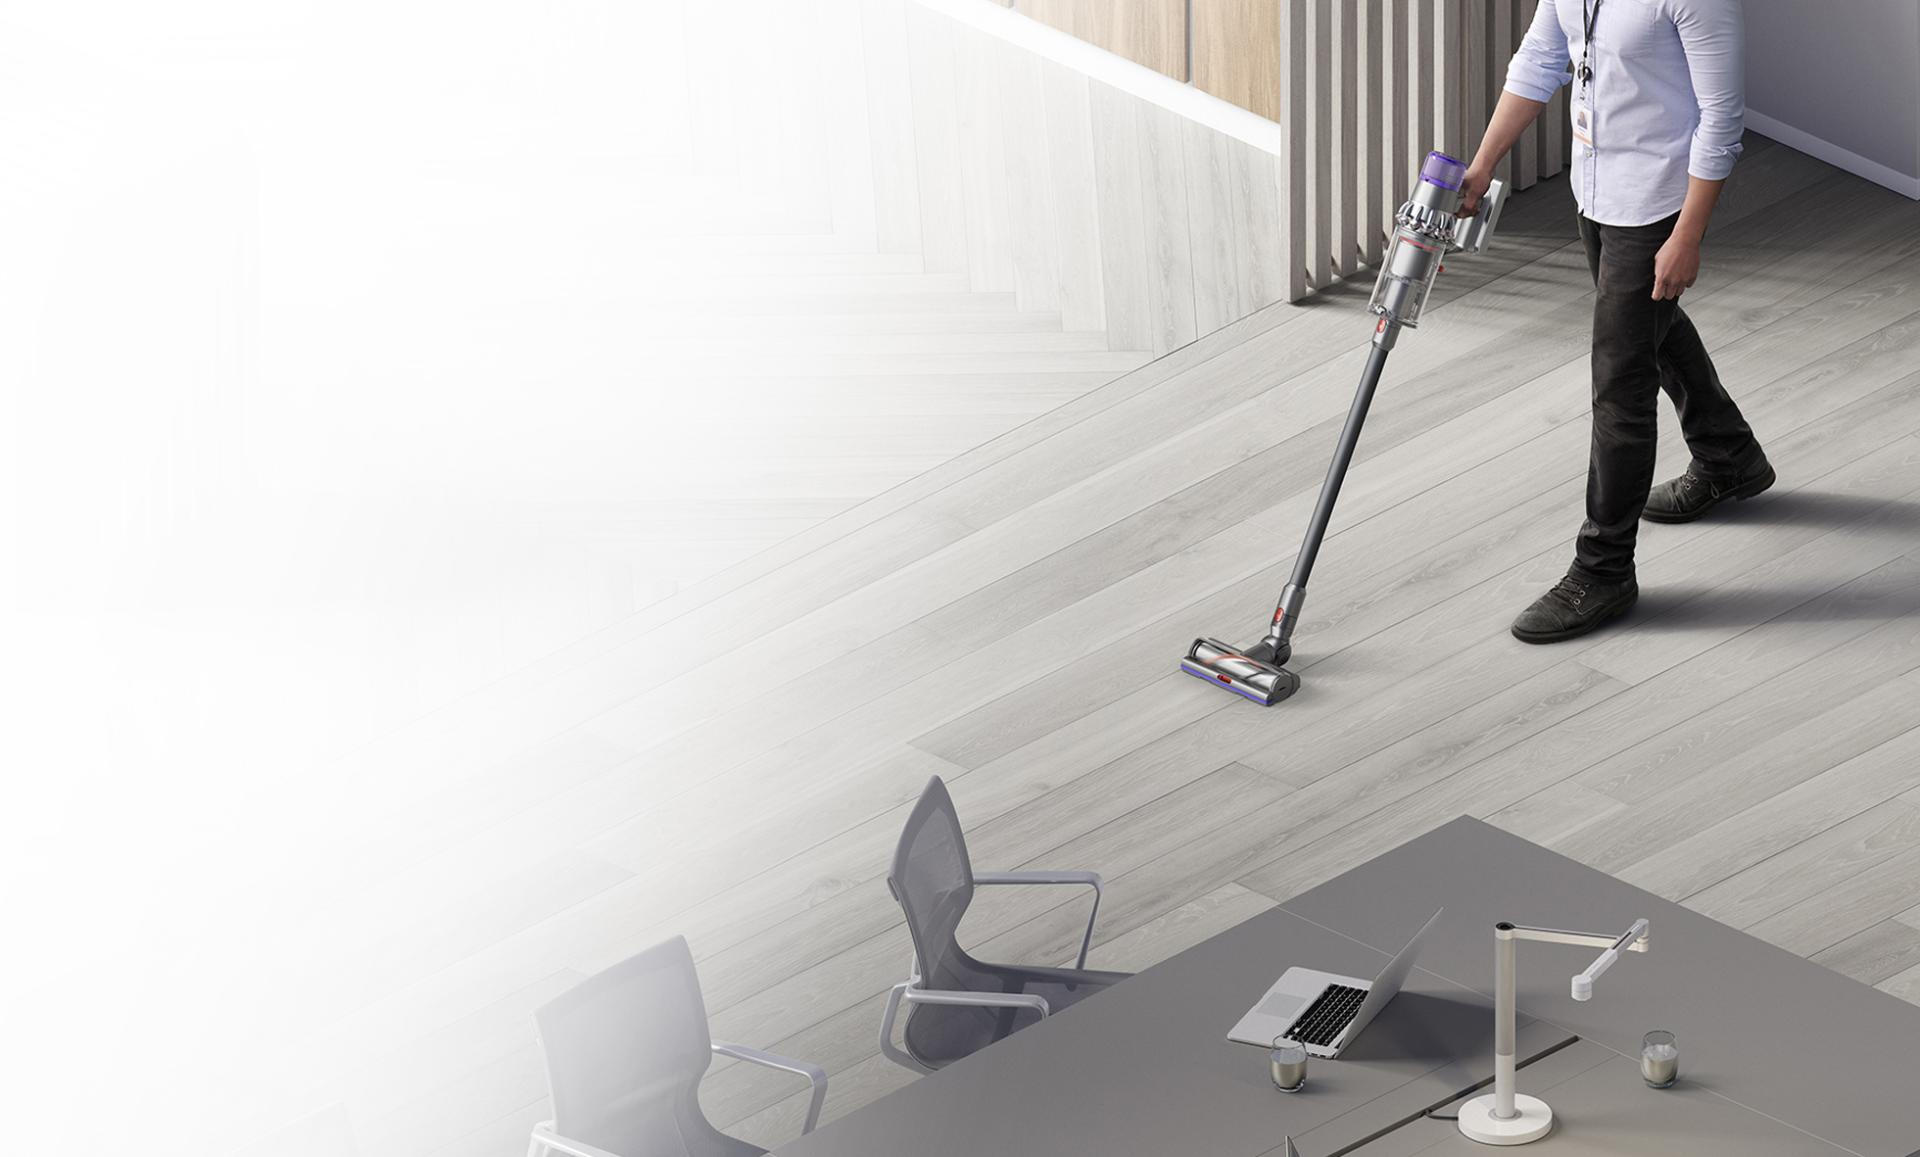 Man cleaning floor with Dyson V11 vacuum